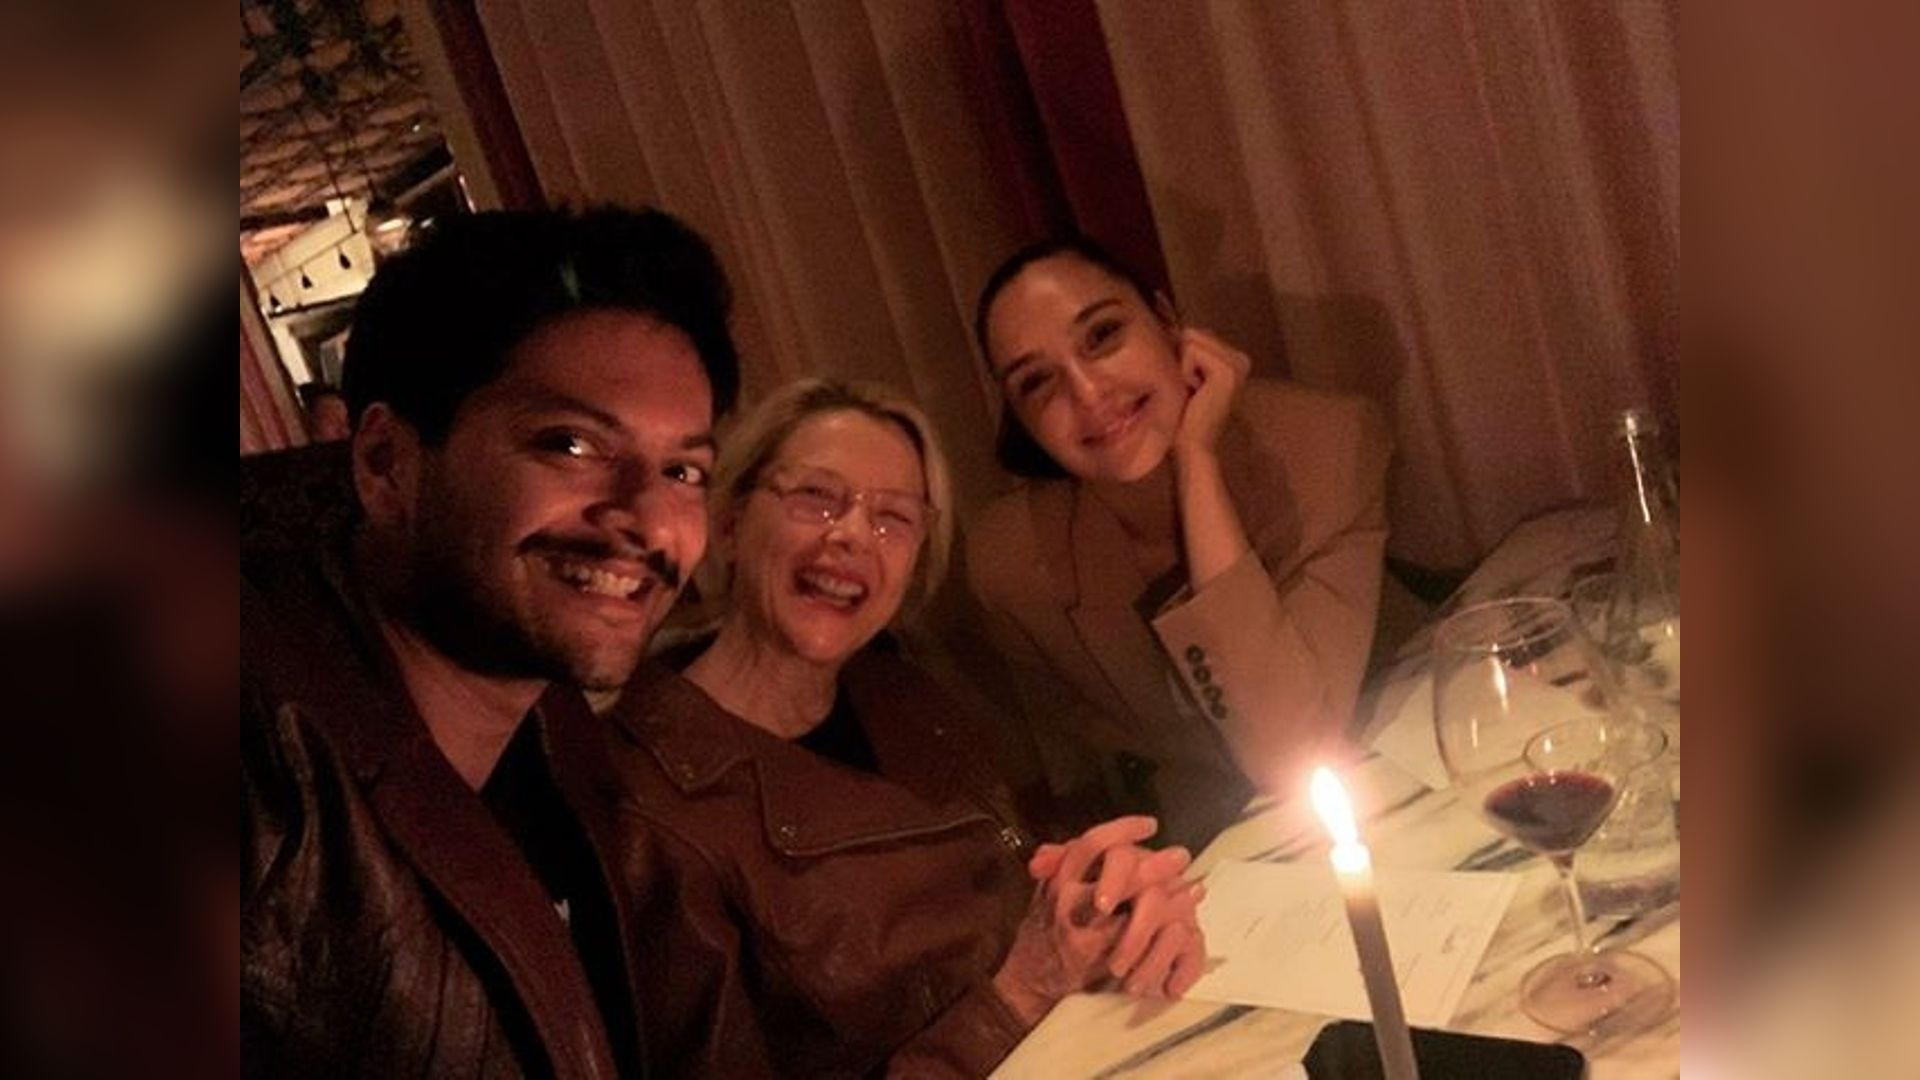 Ali Fazal Celebrates Birthday with 'Wonder Woman' Gal Gadot